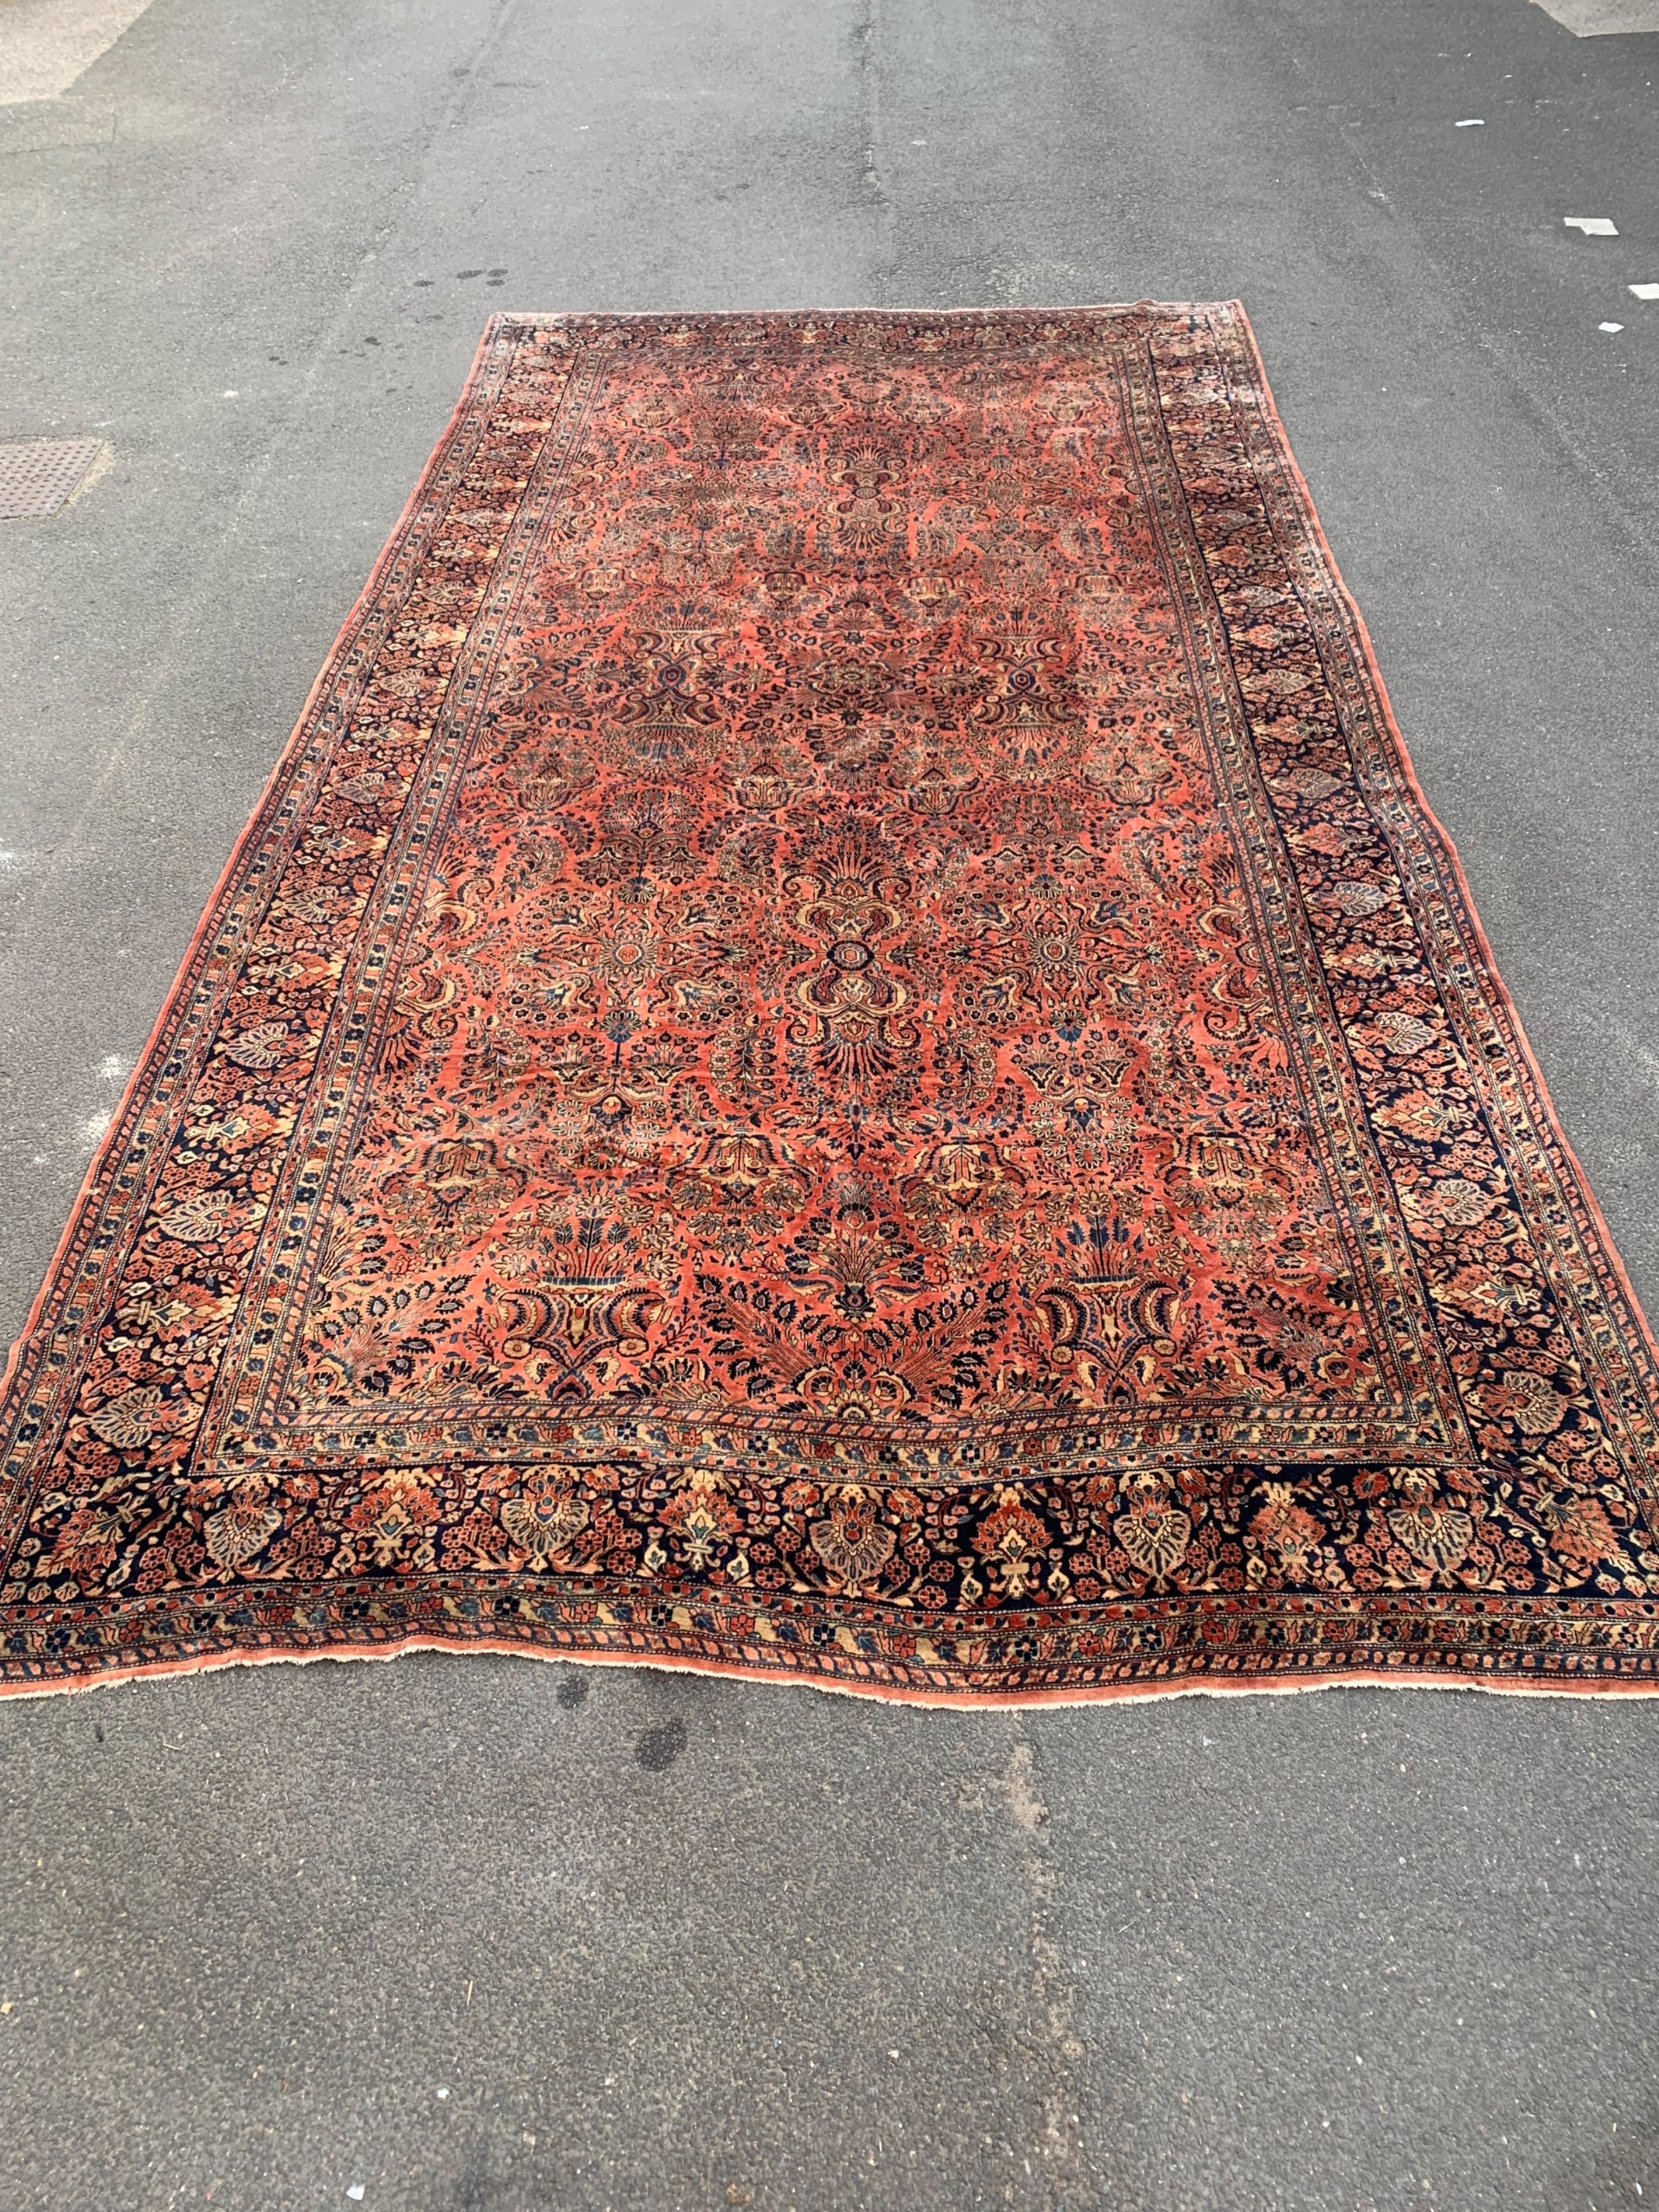 a large stately home antique rug measuring 24ft long x 13ft wide outstanding quality